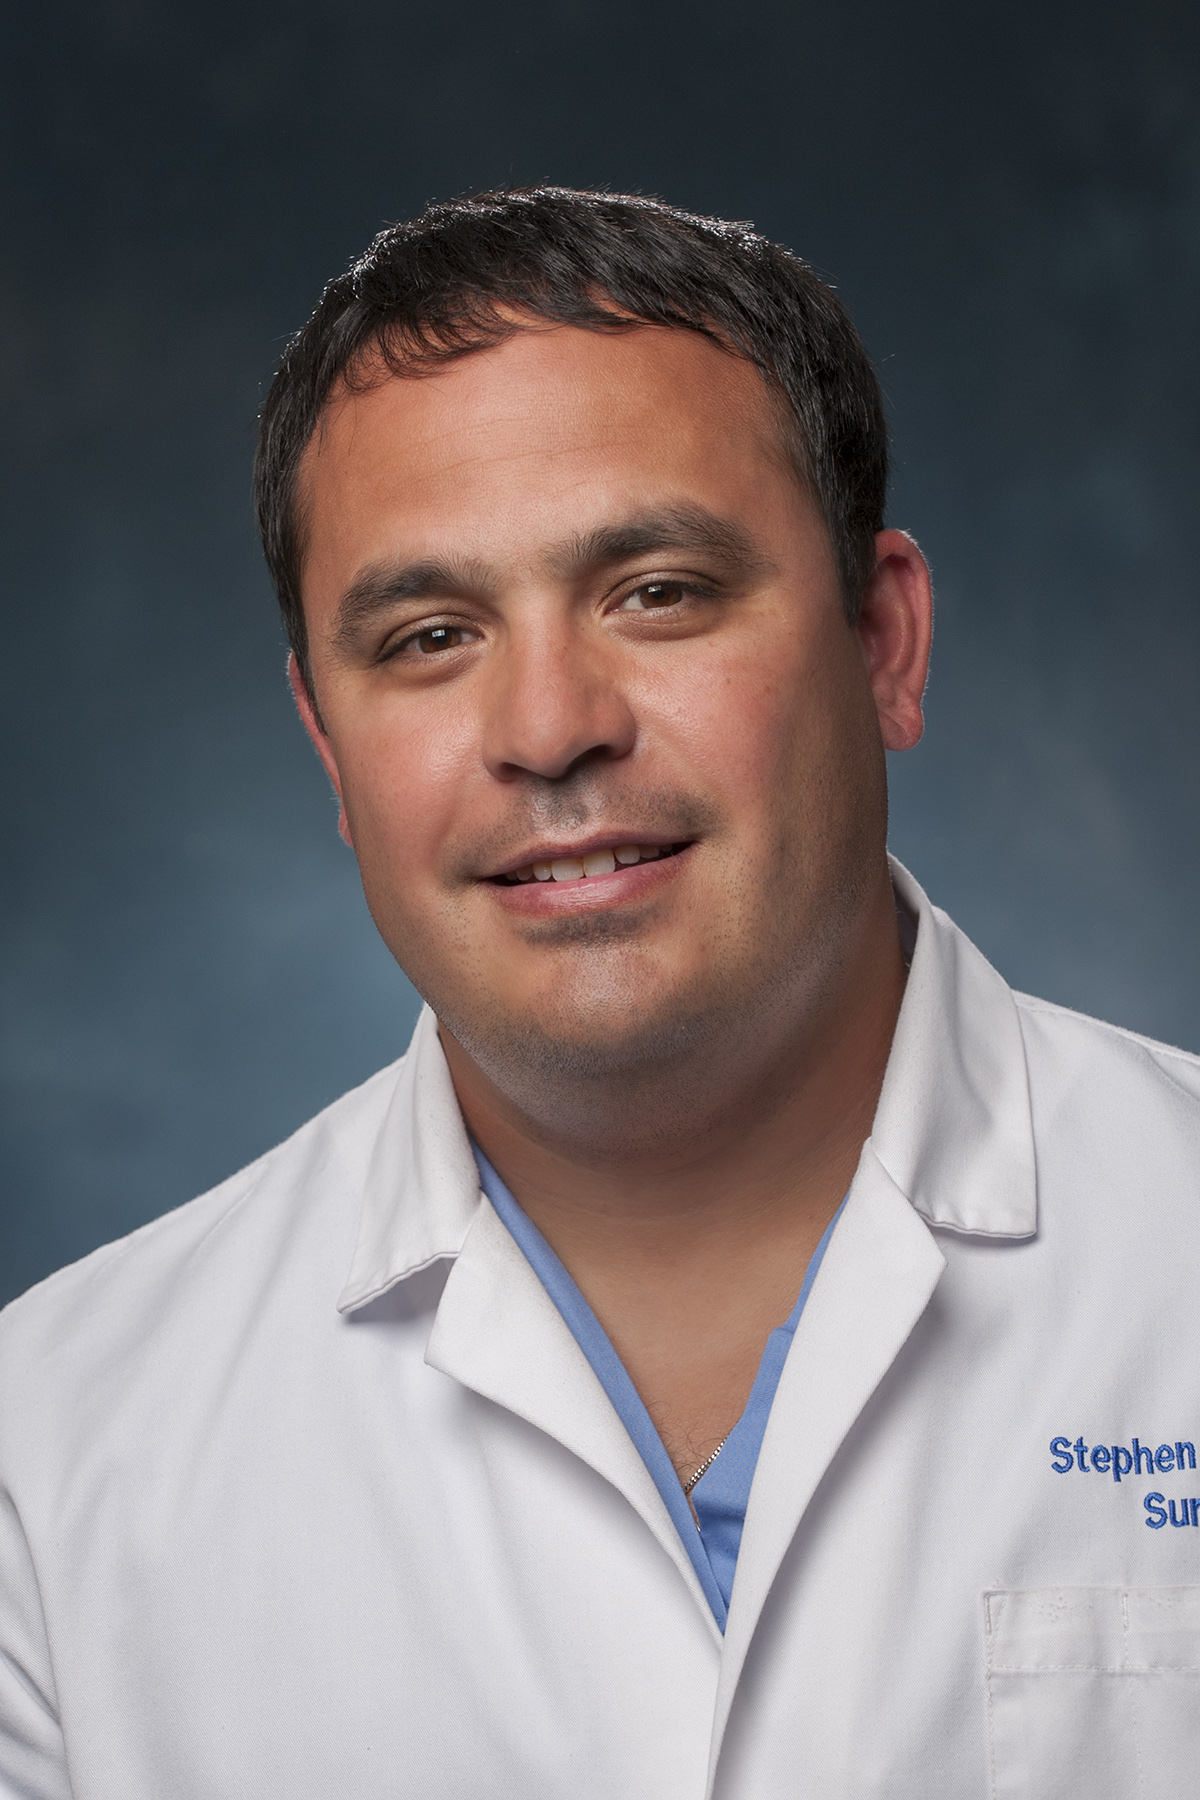 Dr. Stephen Lester, MD